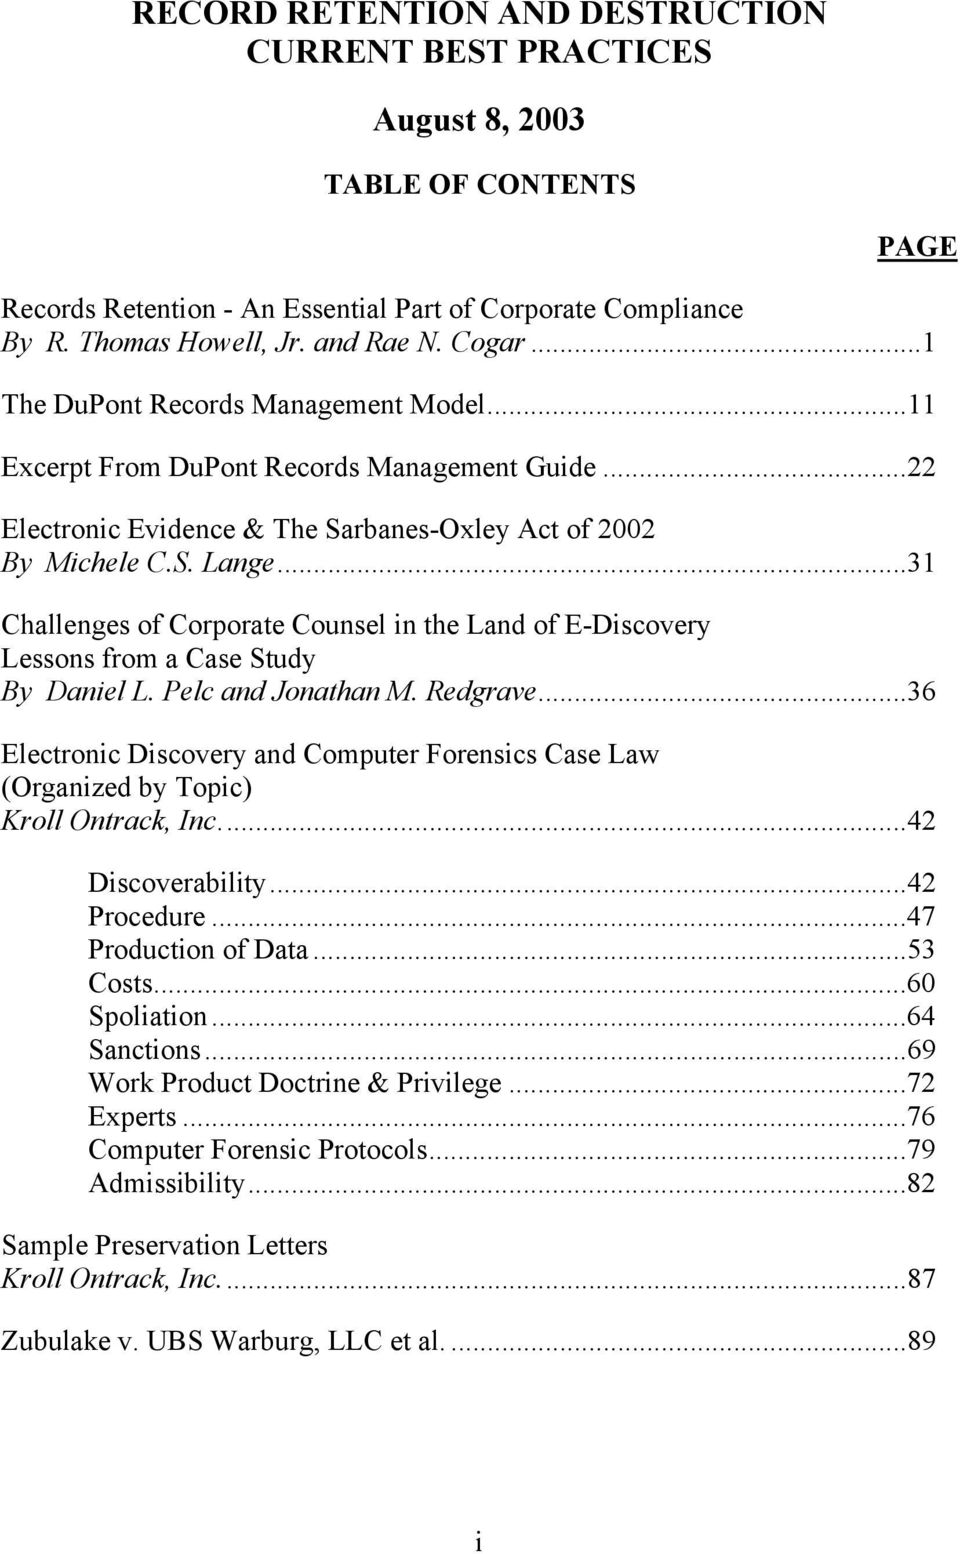 ..31 Challenges of Corporate Counsel in the Land of E-Discovery Lessons from a Case Study By Daniel L. Pelc and Jonathan M. Redgrave.